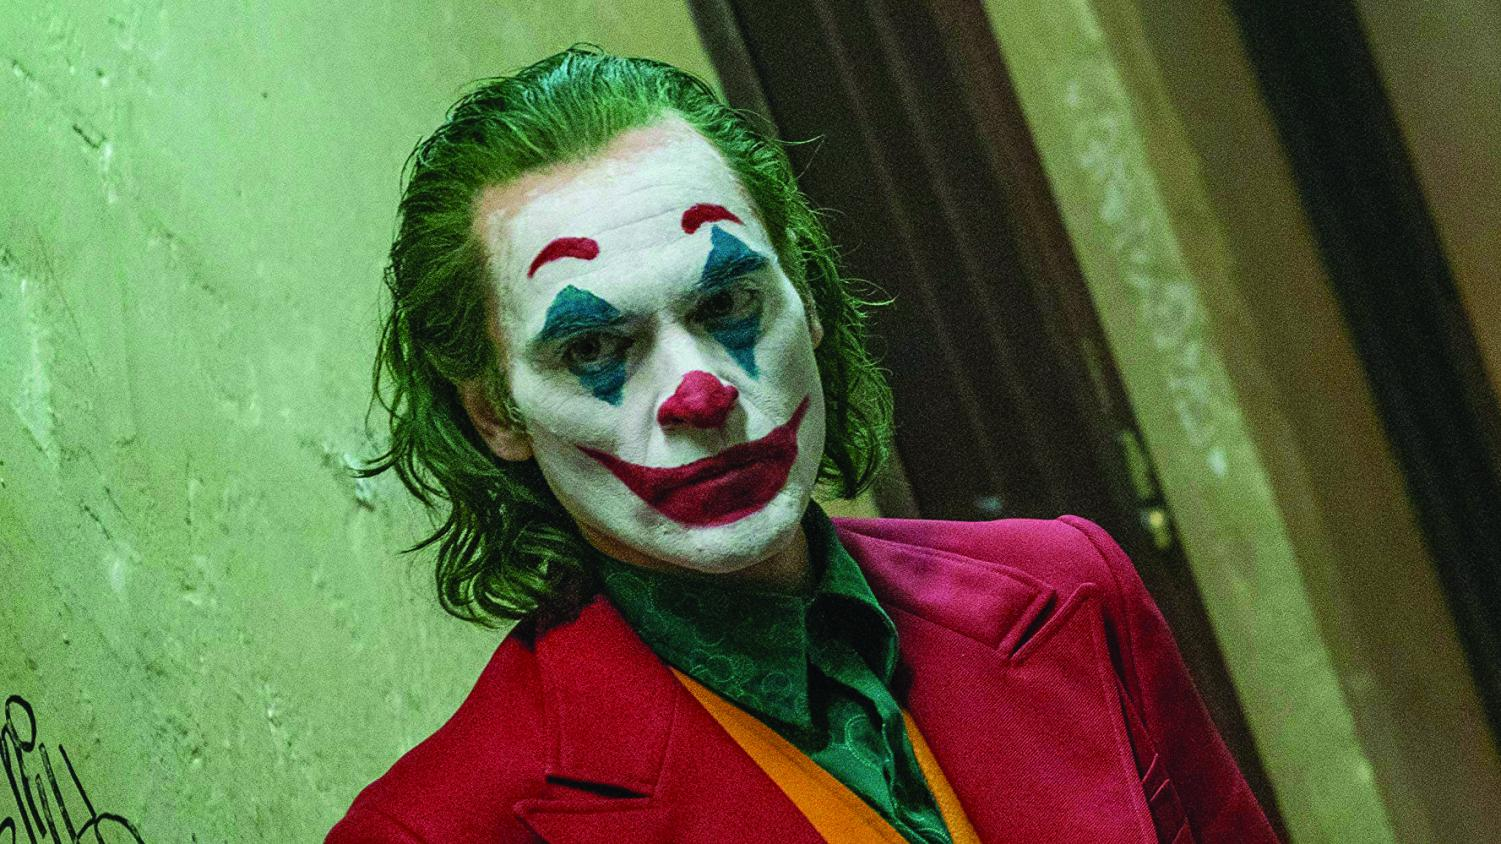 Arthur Fleck sports his new look as Joker, with dyed green hair, his face made up like a clown, and a colorful suit to match. Photo courtesy of IMDb.